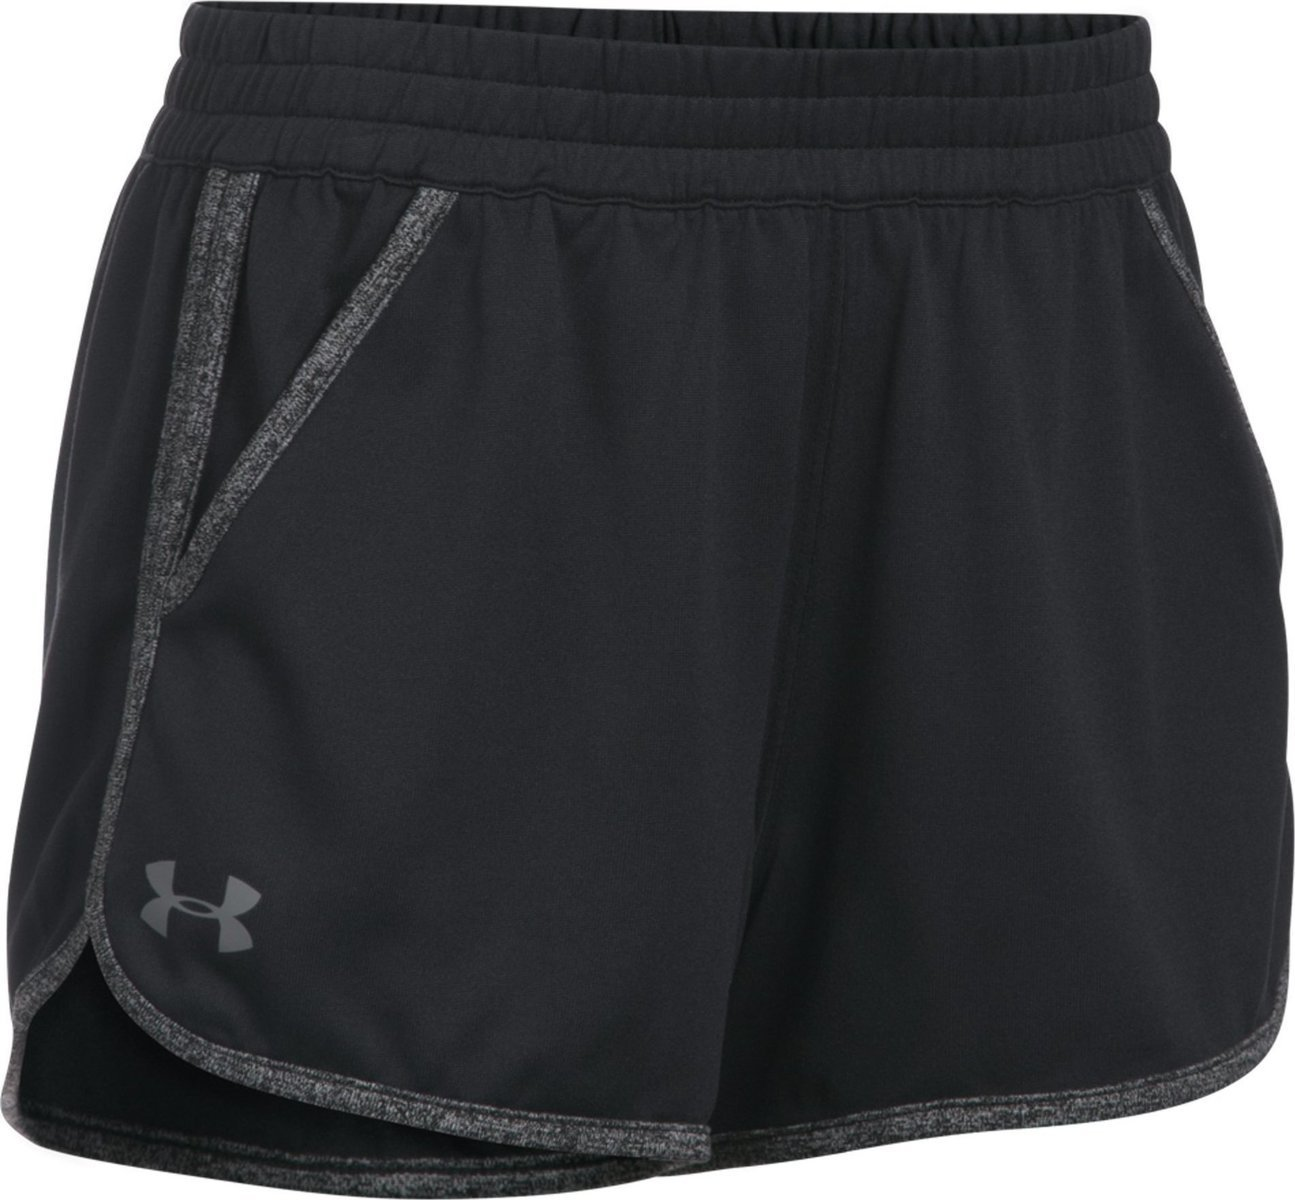 Dámské šortky Under Armour Tech Short 2.0 Twist